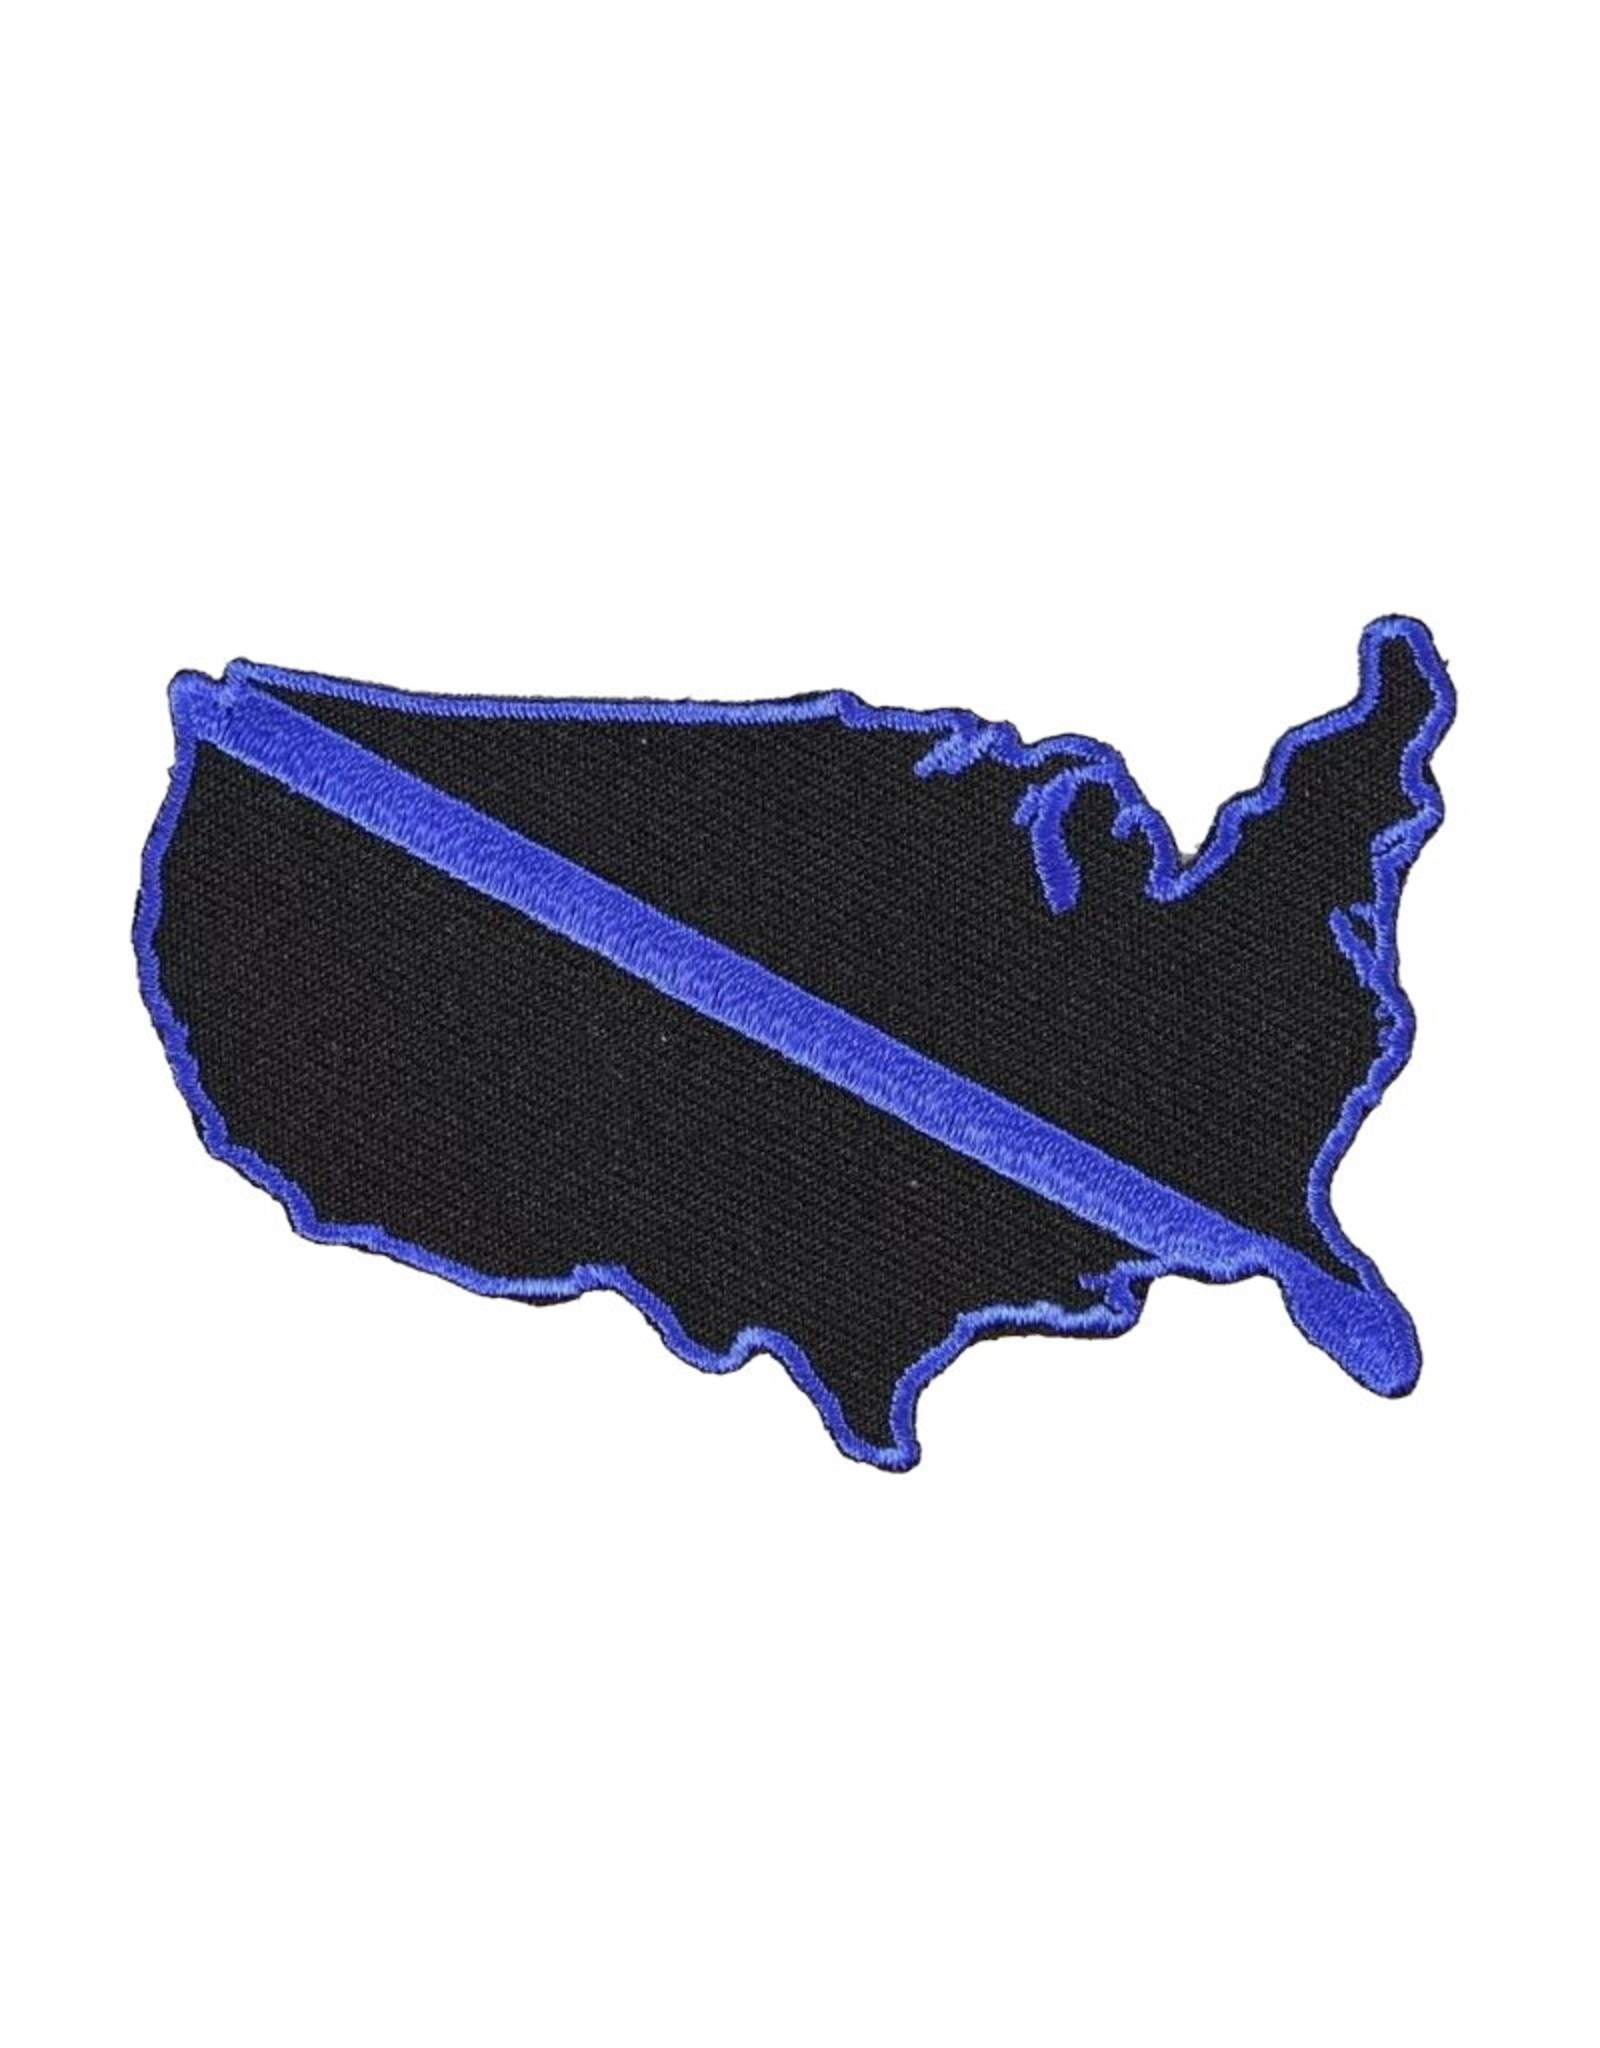 "MidMil Embroidered Thin Blue Line America Patch 3"" wide x 2"" high"